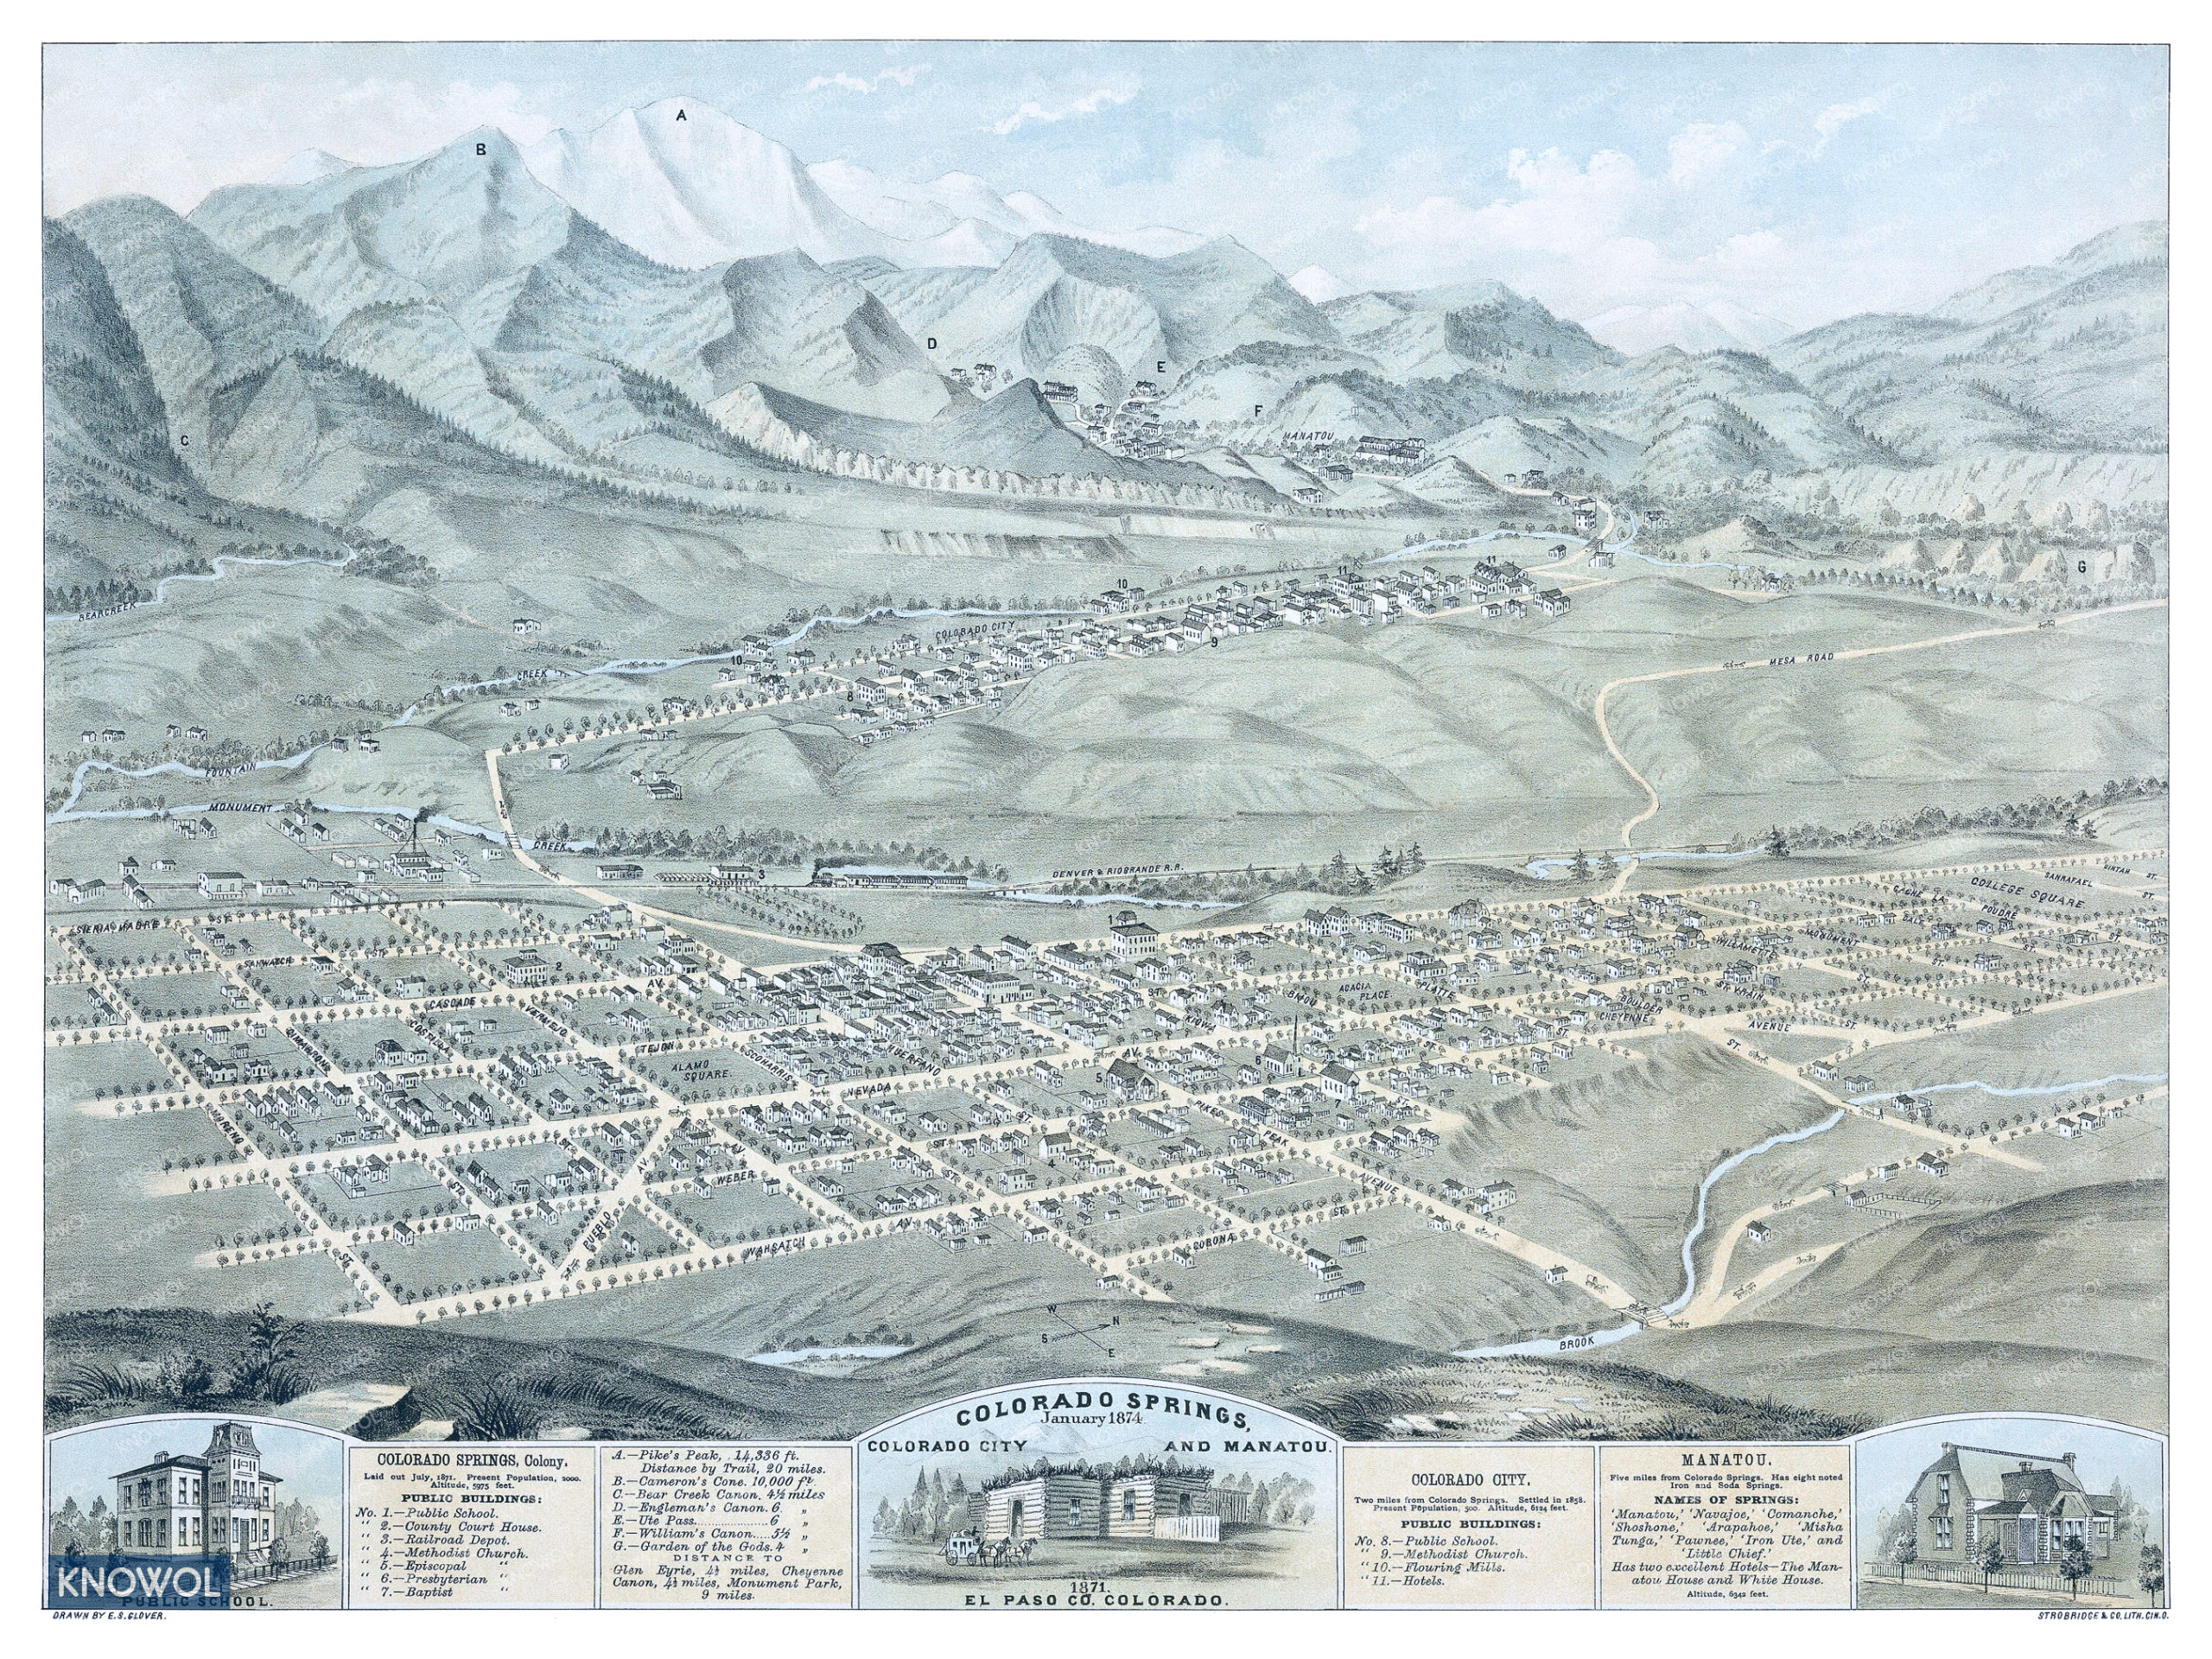 An old map showing Colorado Springs, Colorado City, and Manitou Springs as they looked in 1874. The map is in color and shows the streets and old landmarks. The map also has a detailed guide that labels each landmark and major church.